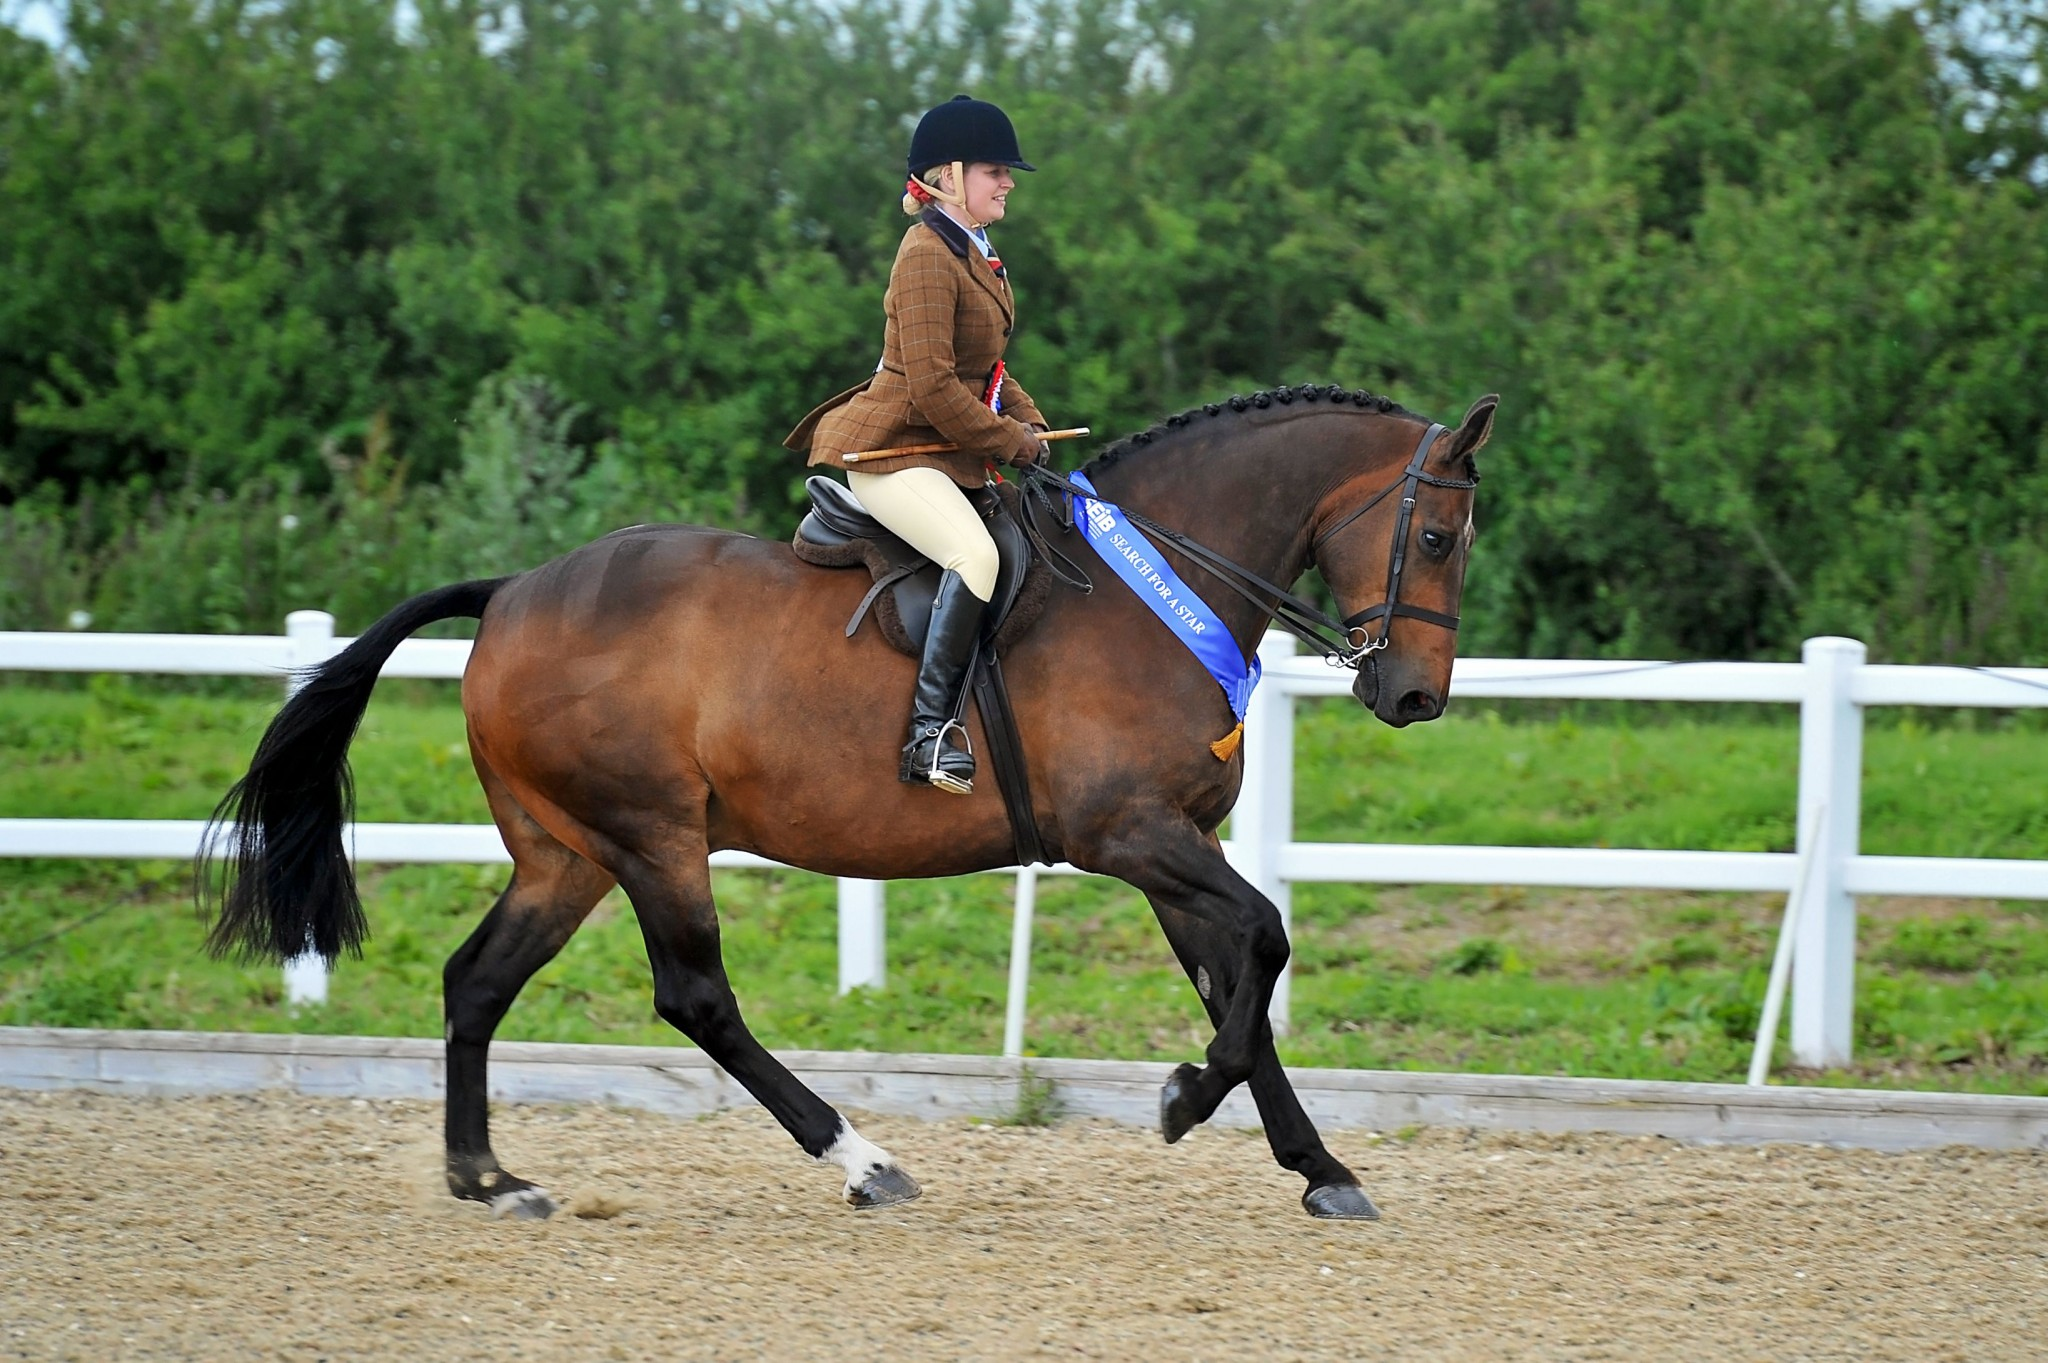 1SH SarahHind TakeTheBiscuit CreditSMRPhotos 1 - Nottinghamshire rider qualifies for Horse of the Year Show